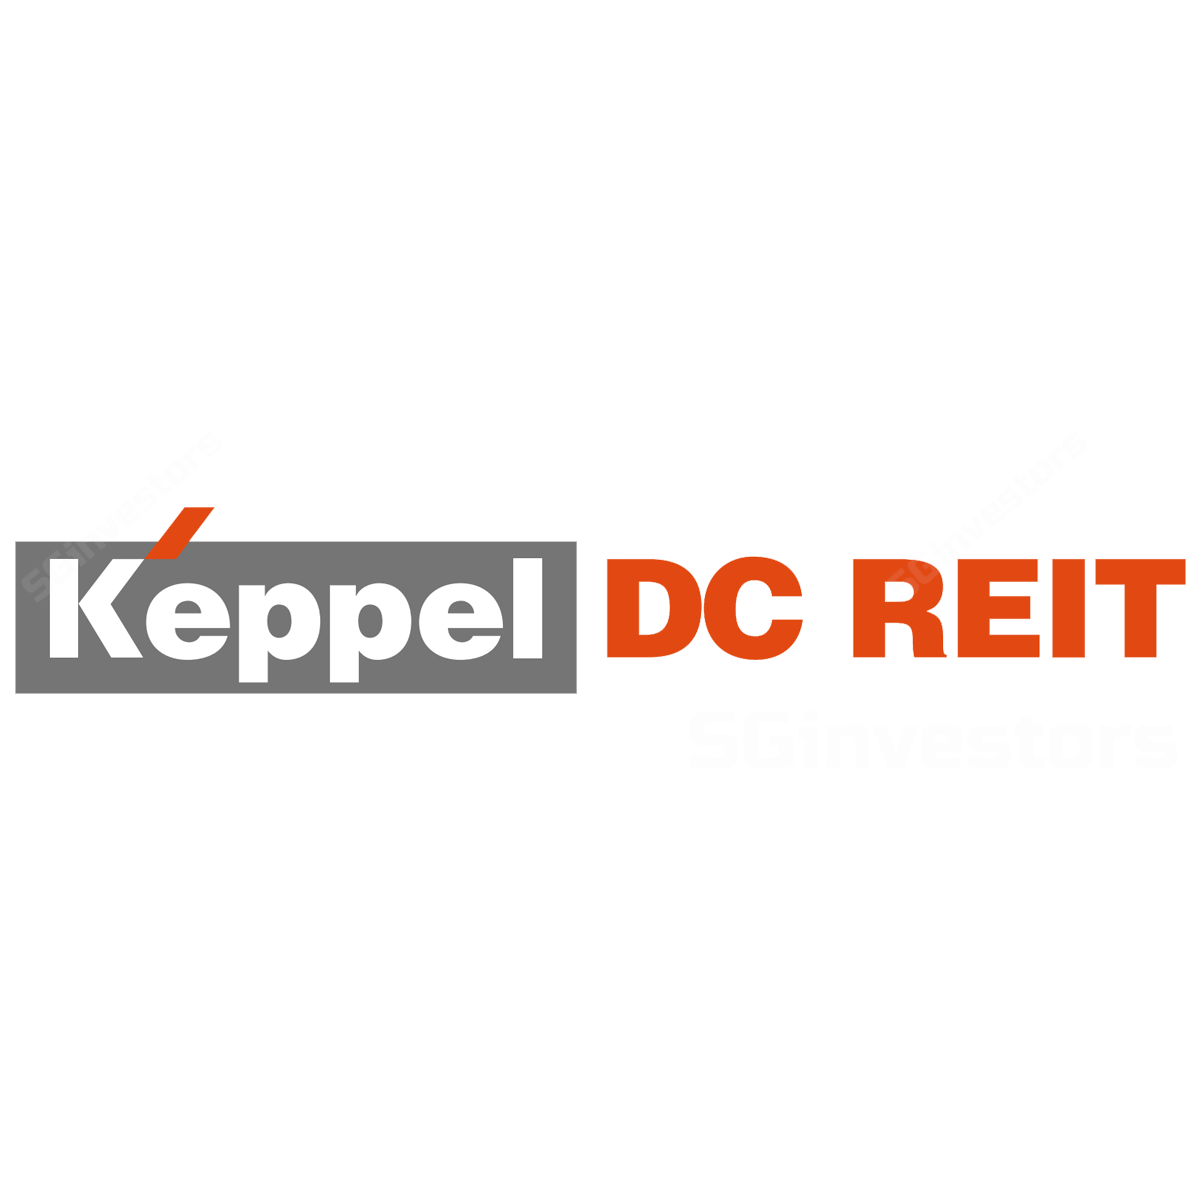 Keppel DC REIT - DBS Group Research Research 2018-08-08: Building Blocks For A Brighter Future